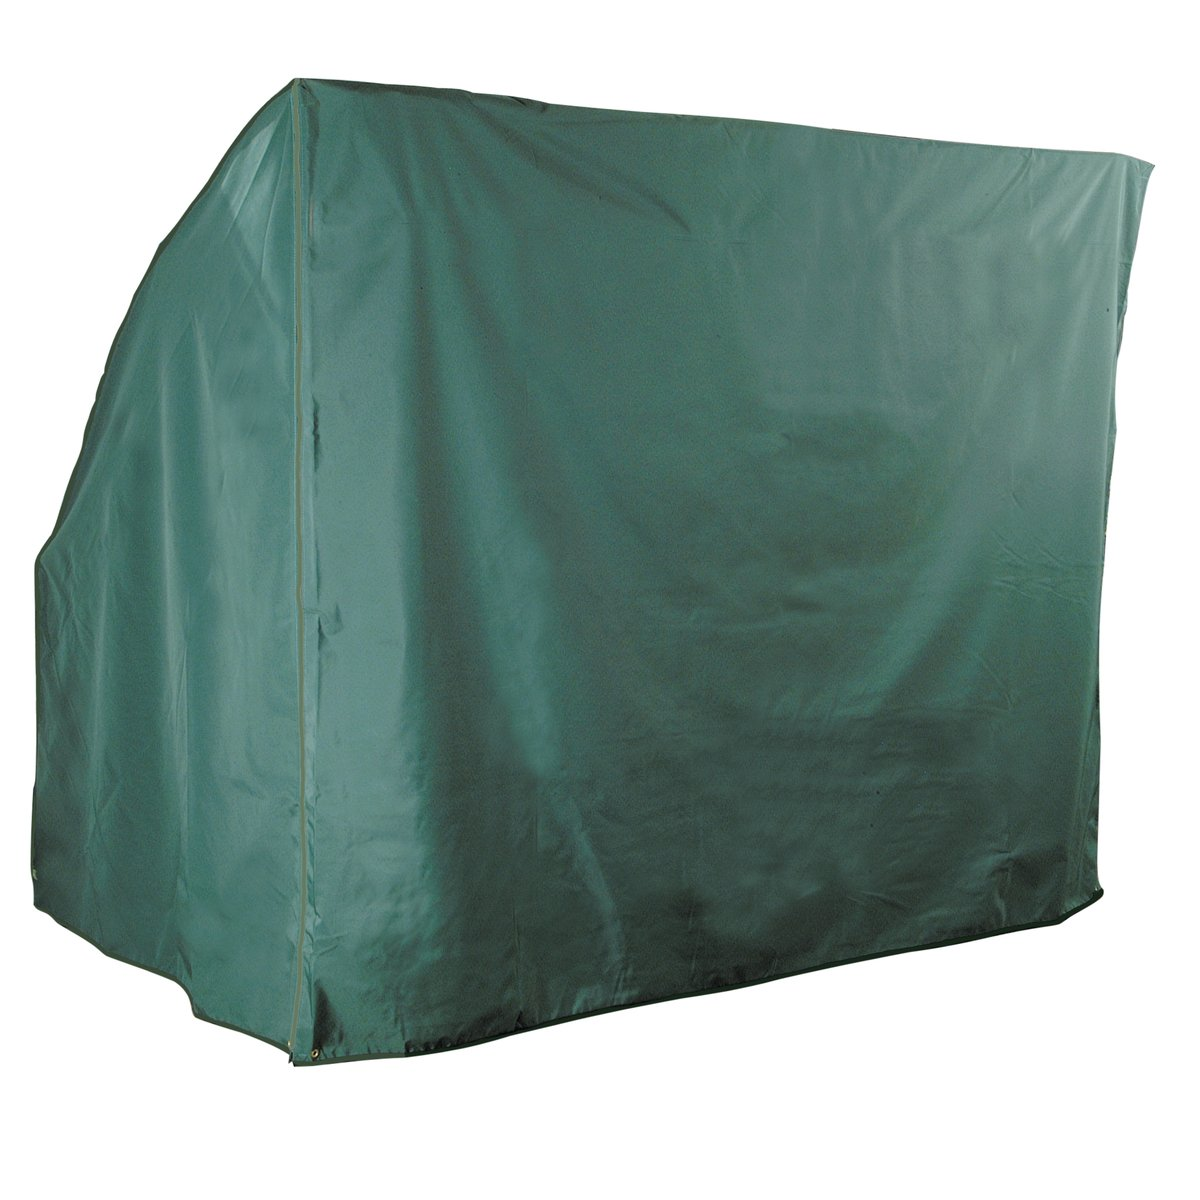 Bosmere Outdoor 2-Seat Hammock Cover, Green